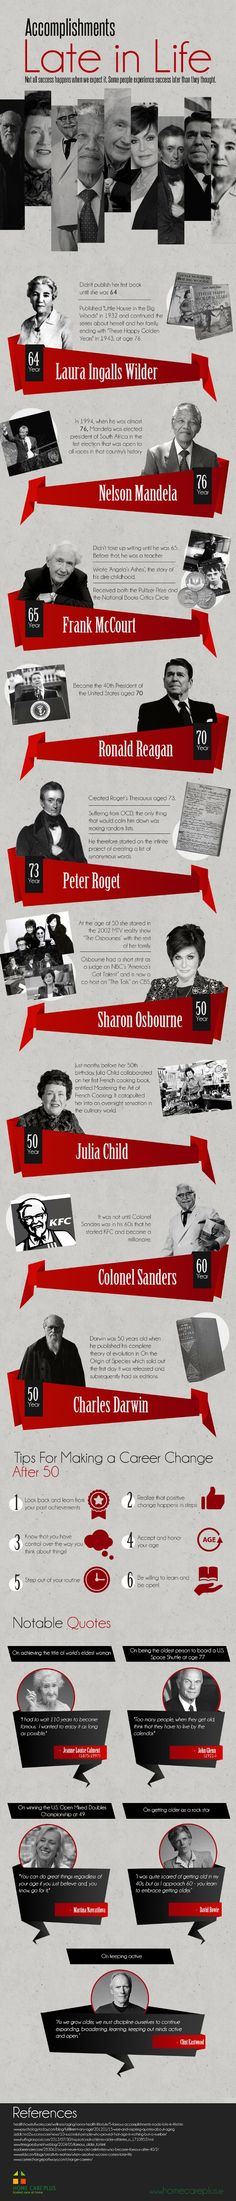 Achievements Late in Life - 9 Inspiring Late Bloomers